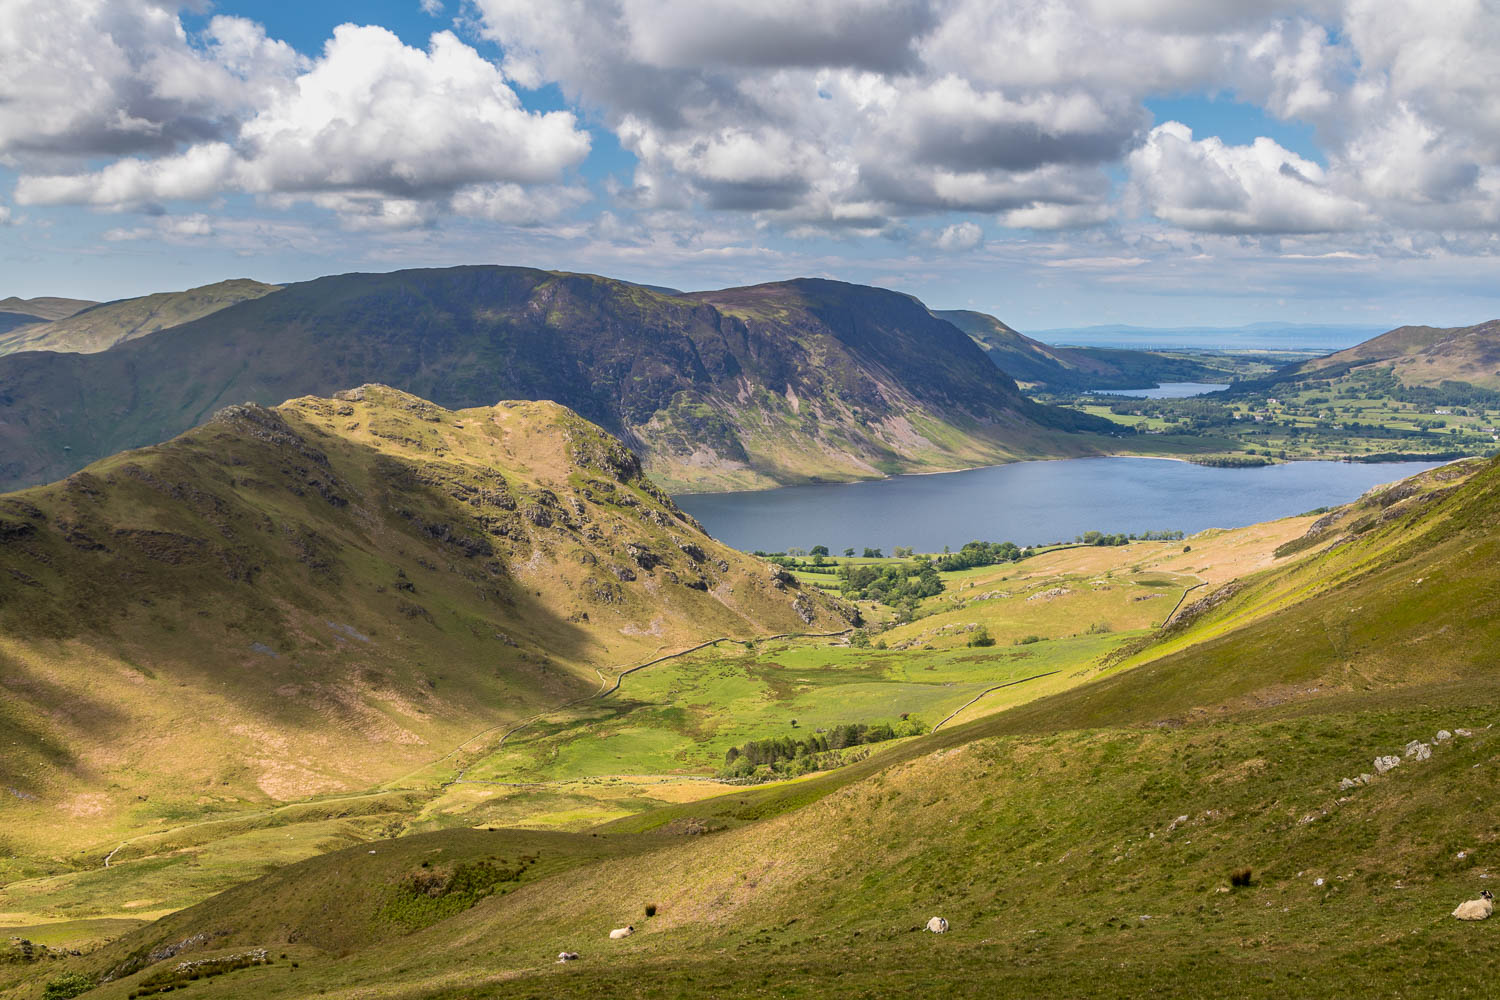 Crummock Water, Loweswater and the Solway Firth